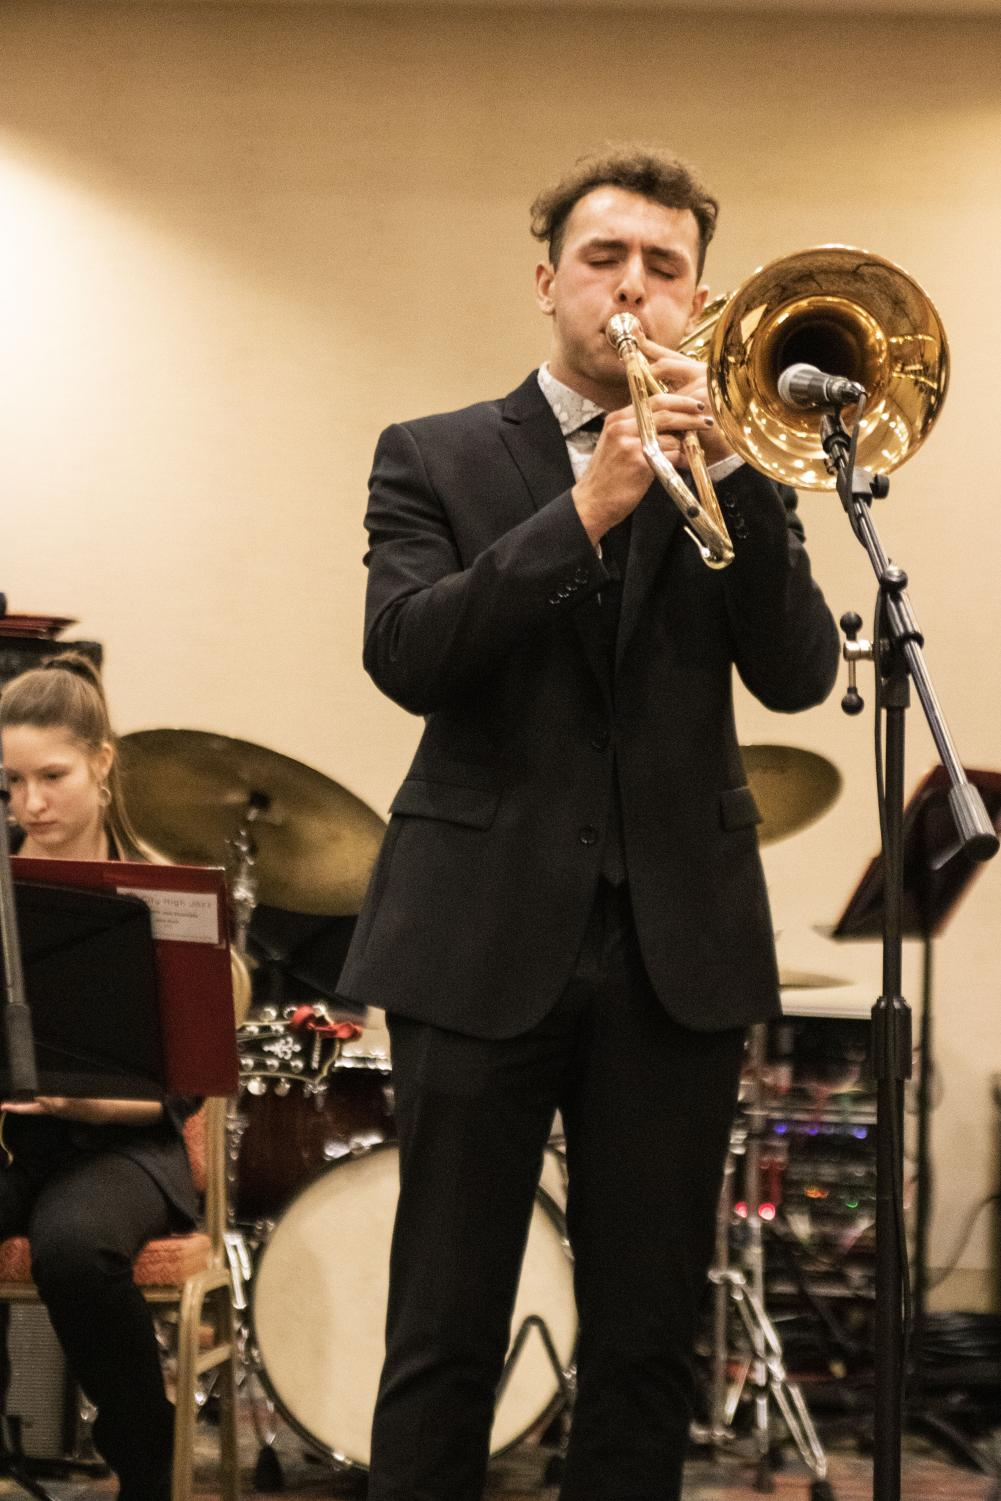 Ryan+Carter+%2720+soloing+on+Bass+Trombone.+Carter+was+one+of+three+city+high+students+who+also+participate+in+All+State+Jazz